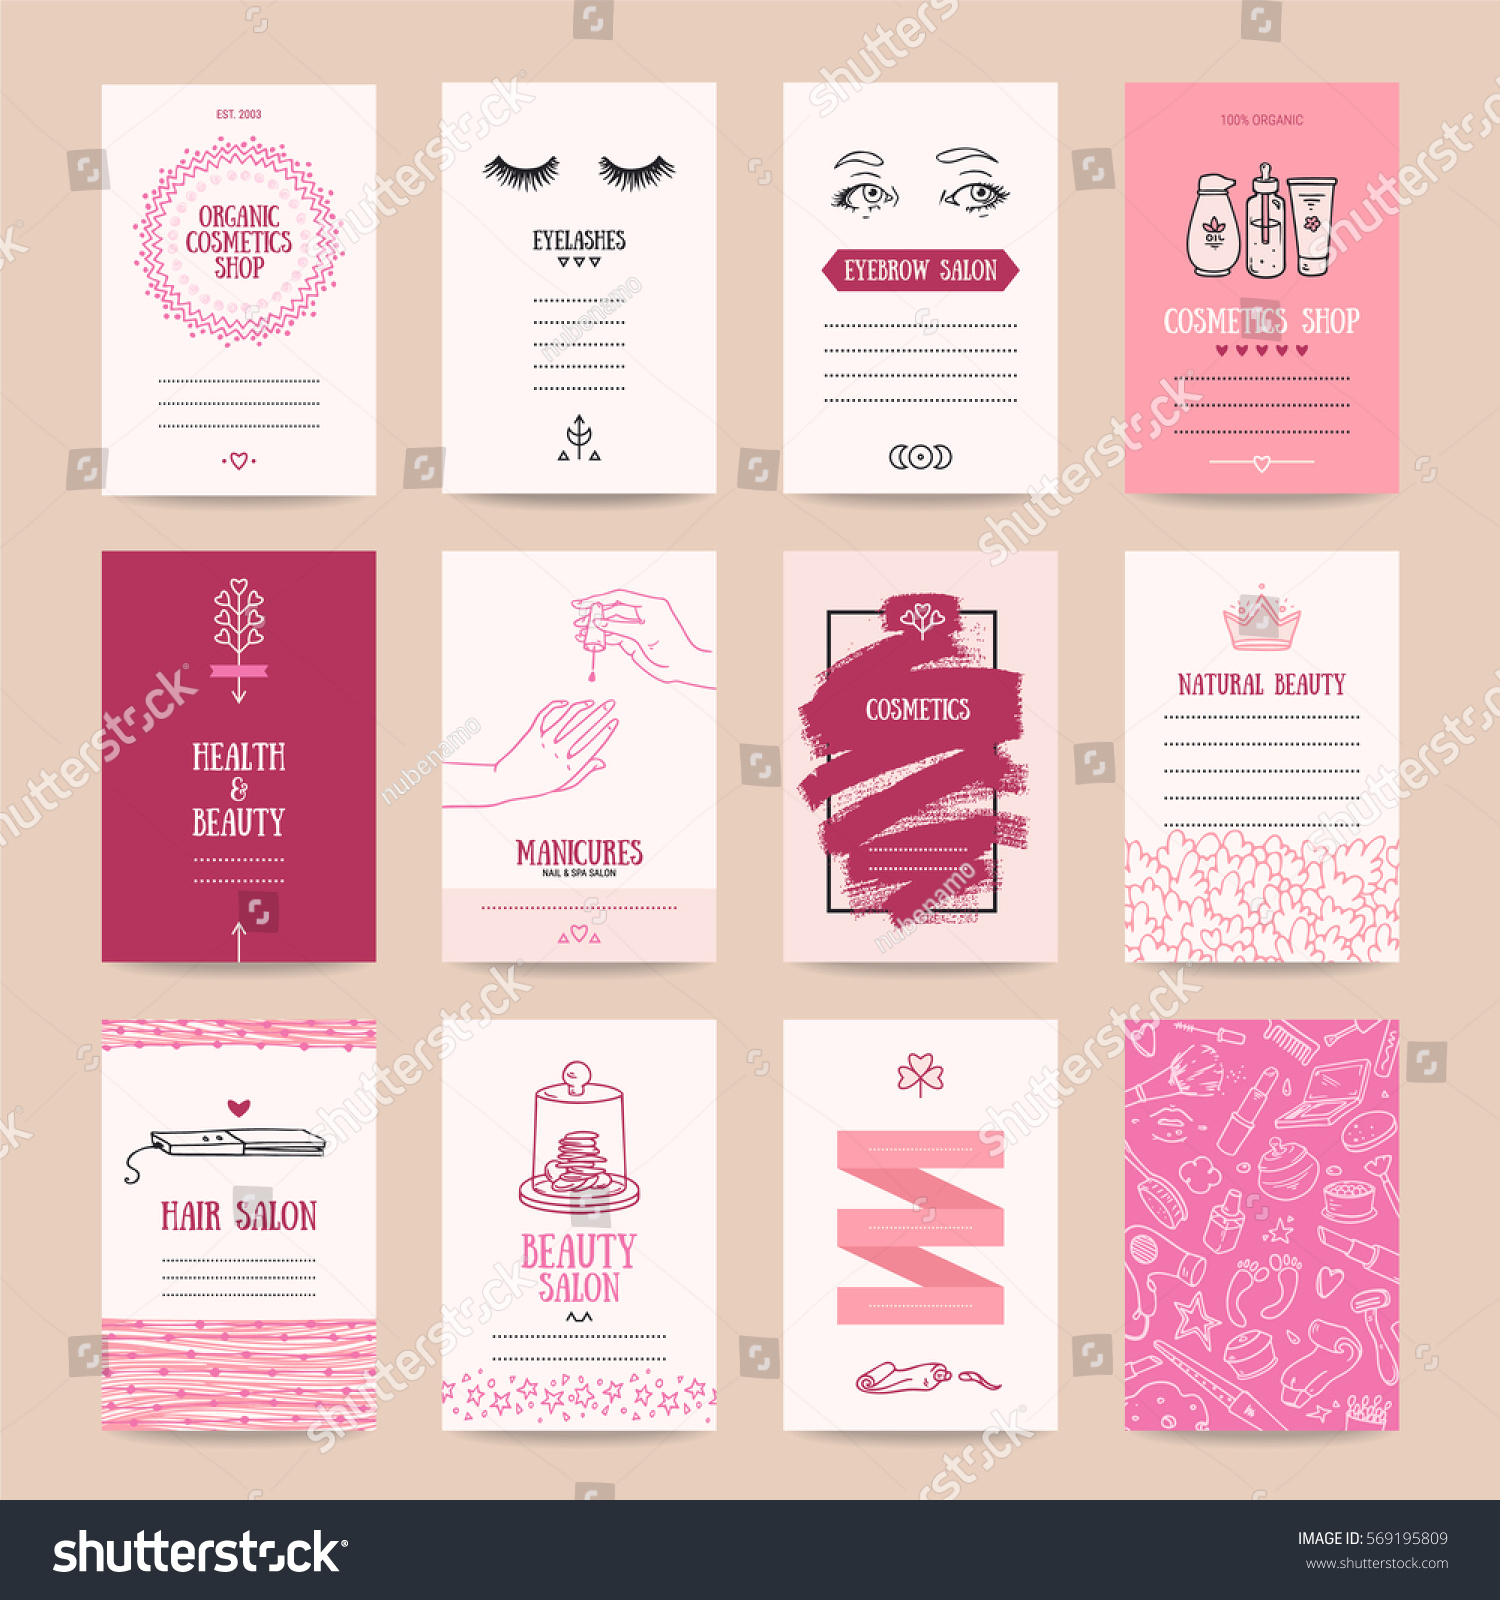 Cosmetics Shop Business Card Beauty Parlor Stock Vector 569195809 ...